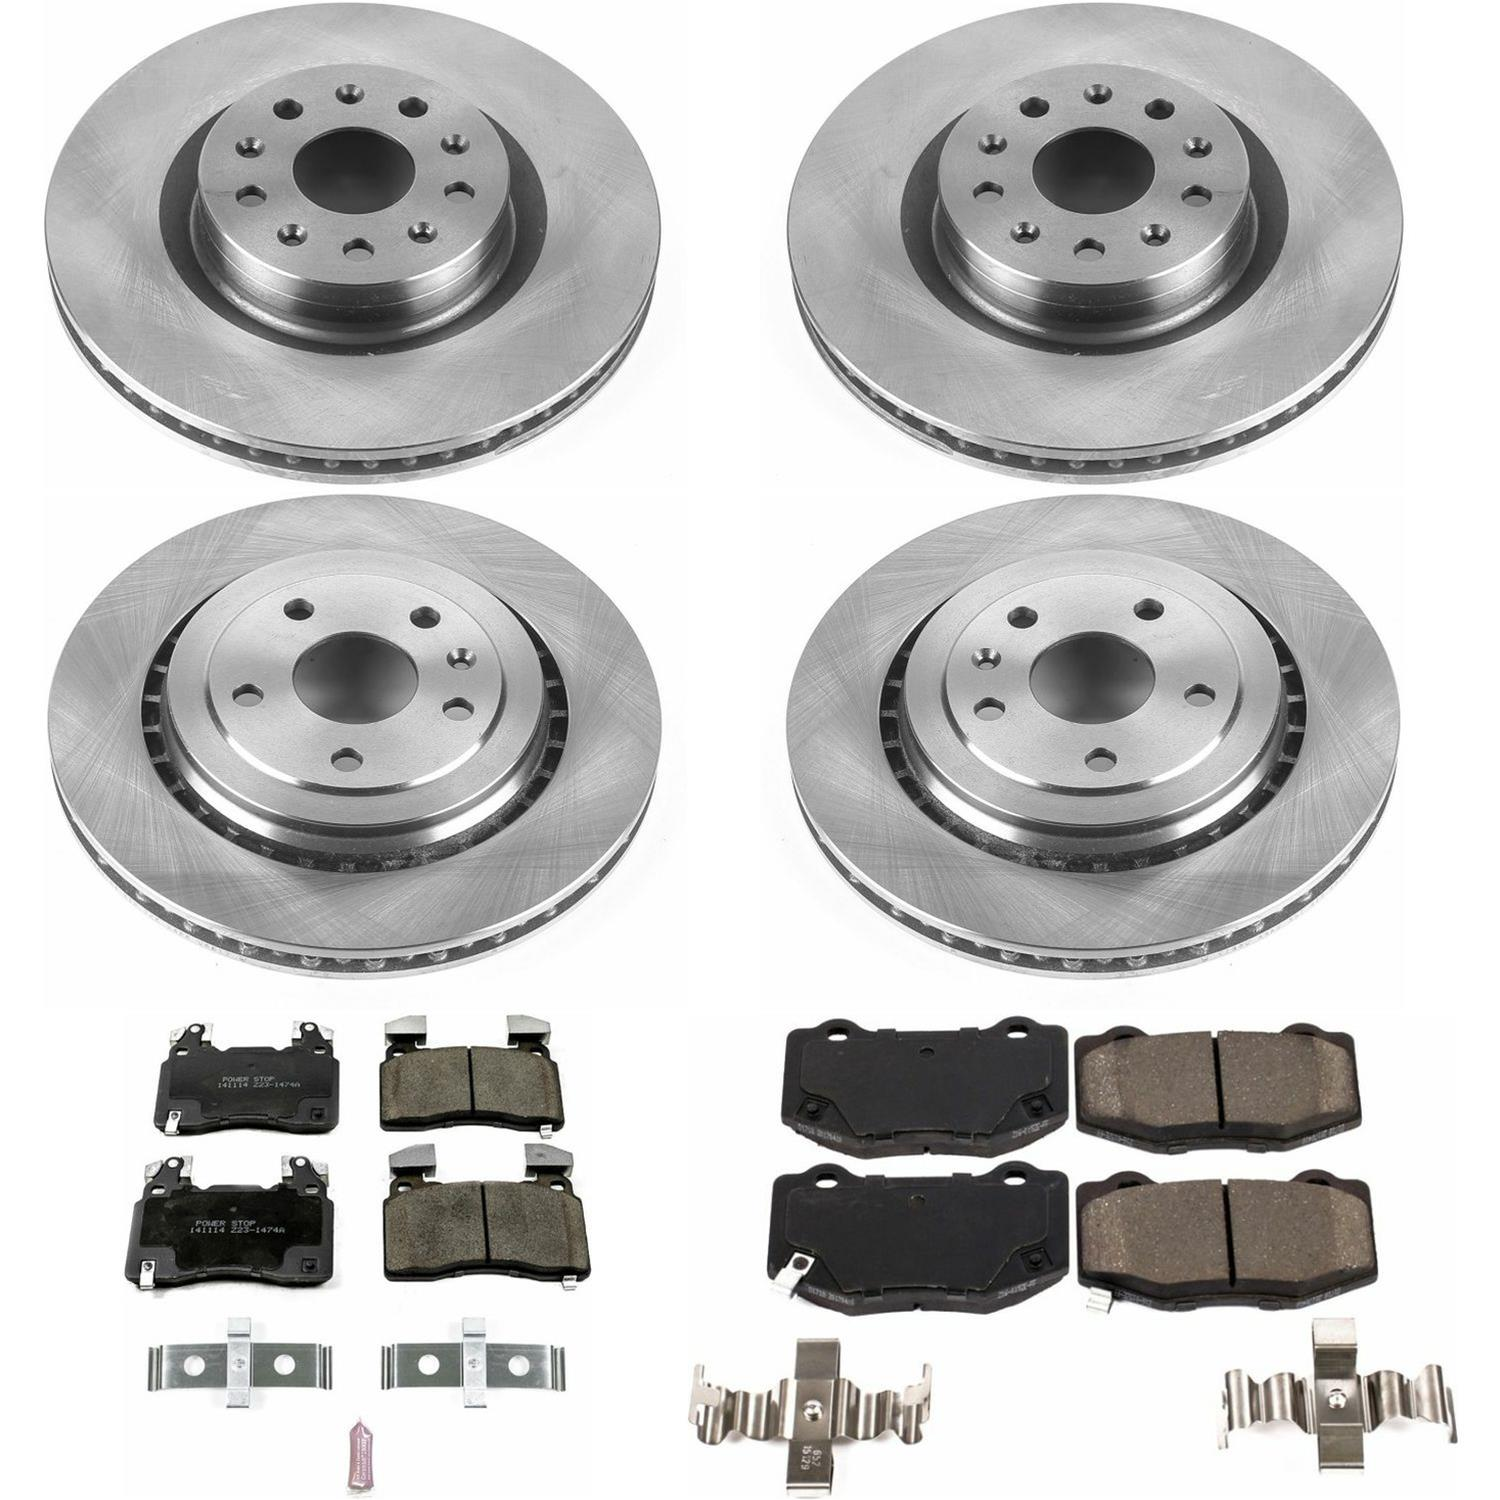 Power Stop KOE6291 Front and Rear Stock Replacement Brake Kit